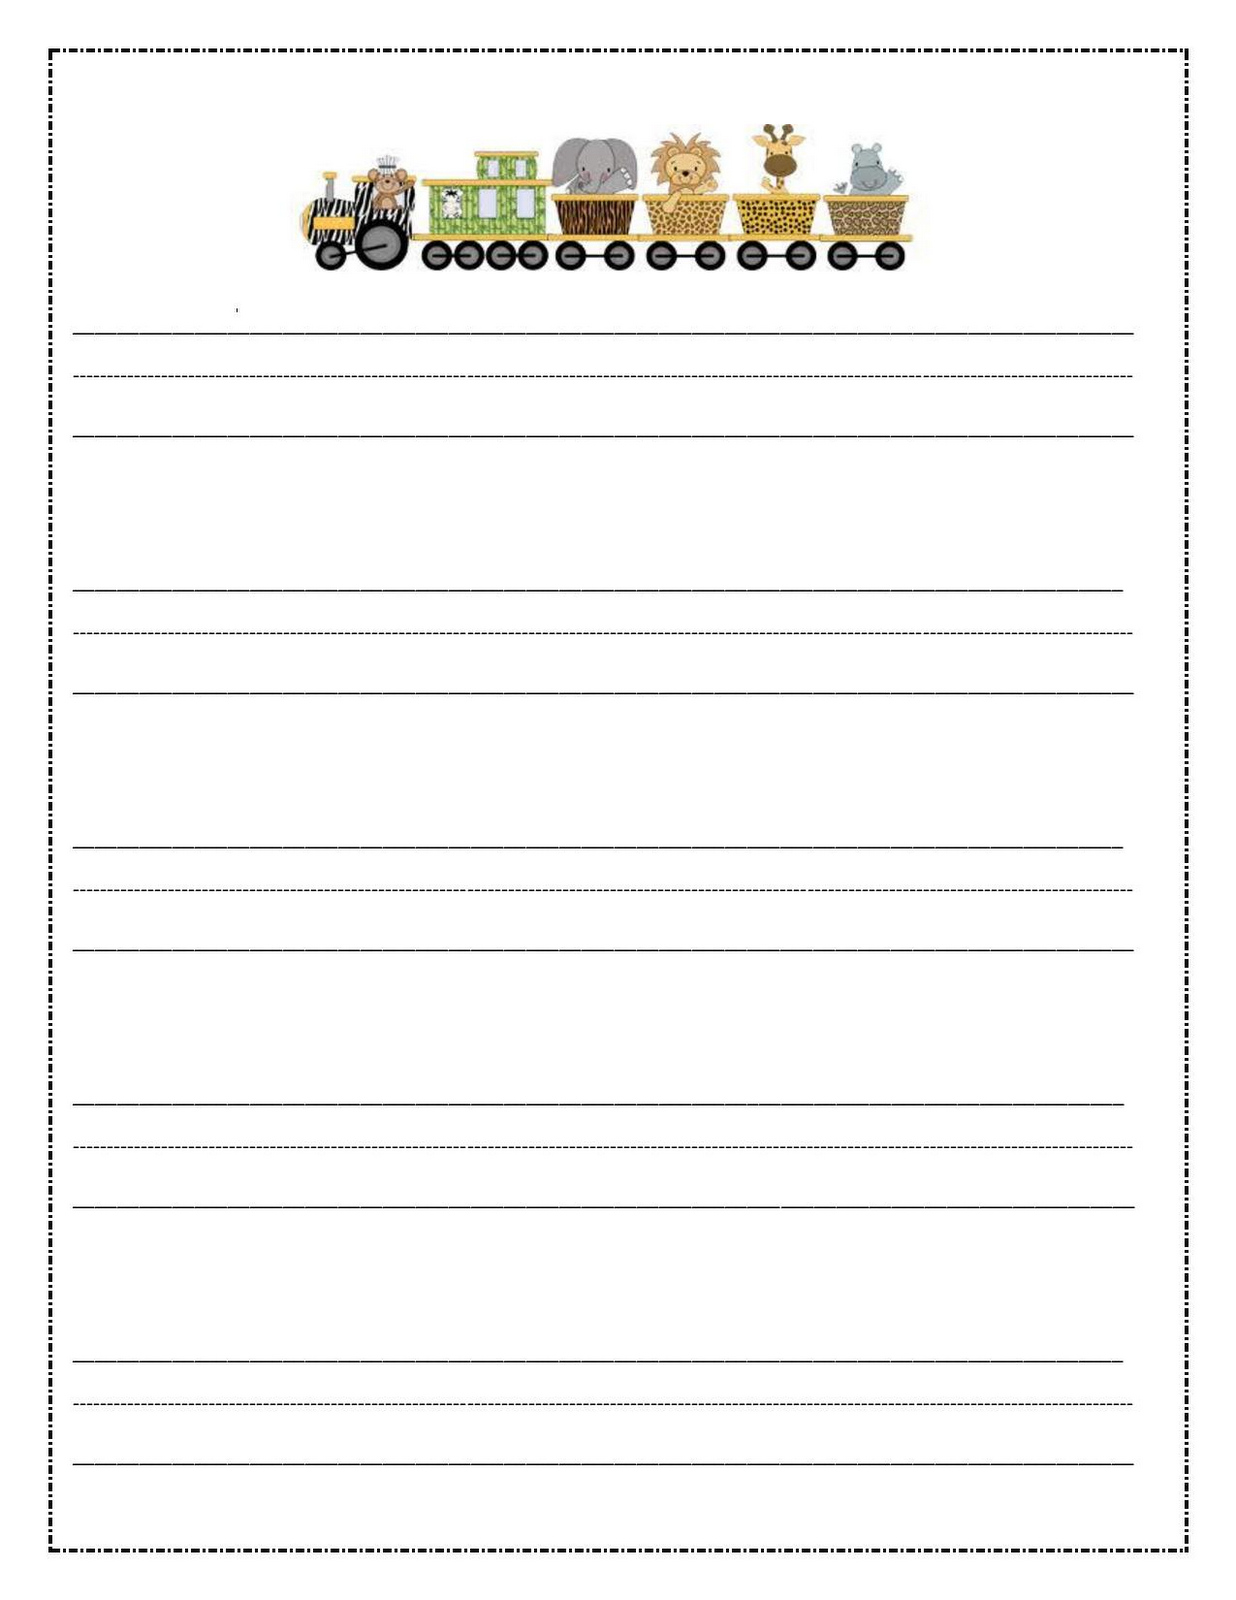 writing paper printable for children | notebook paper templates